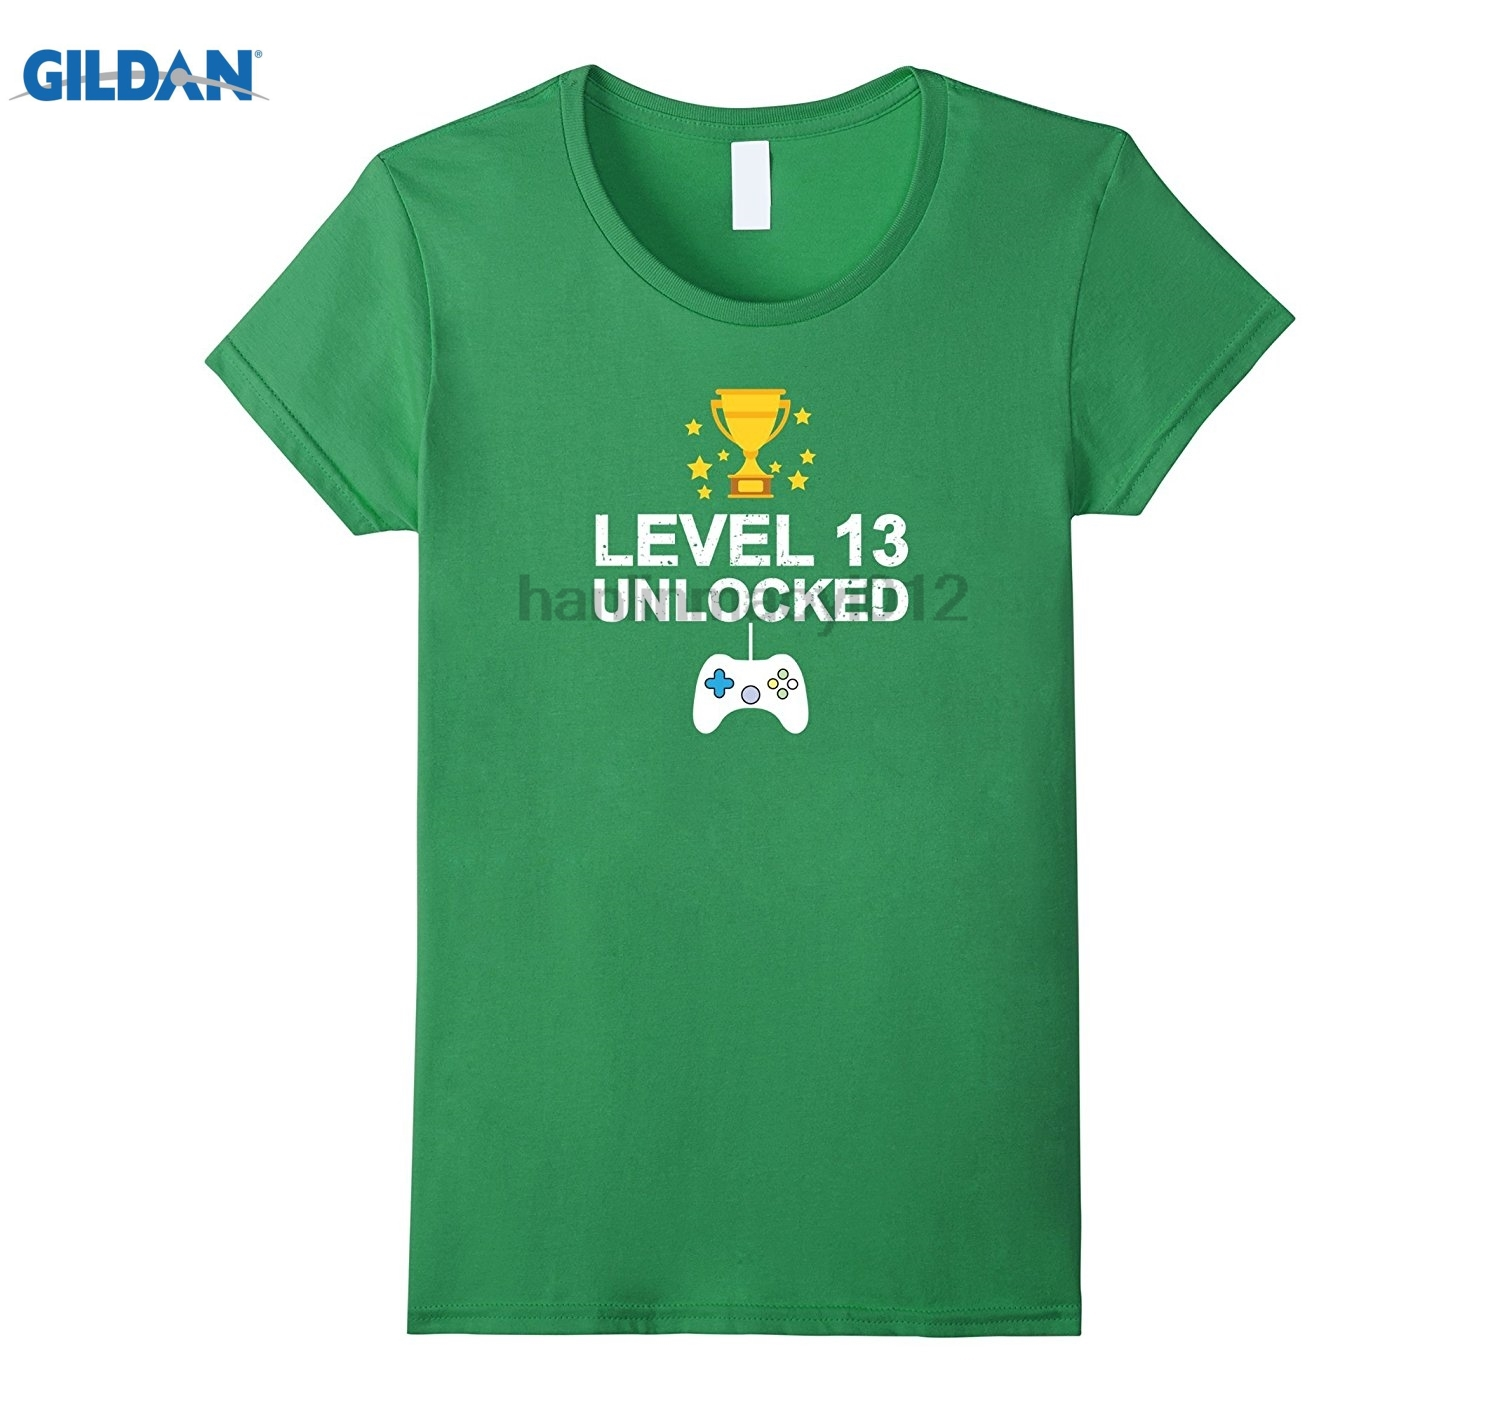 GILDAN 13th Birthday Level 13 Unlocked Funny T-shirt Gamer Gift Kid GILDAN brand clothin ...